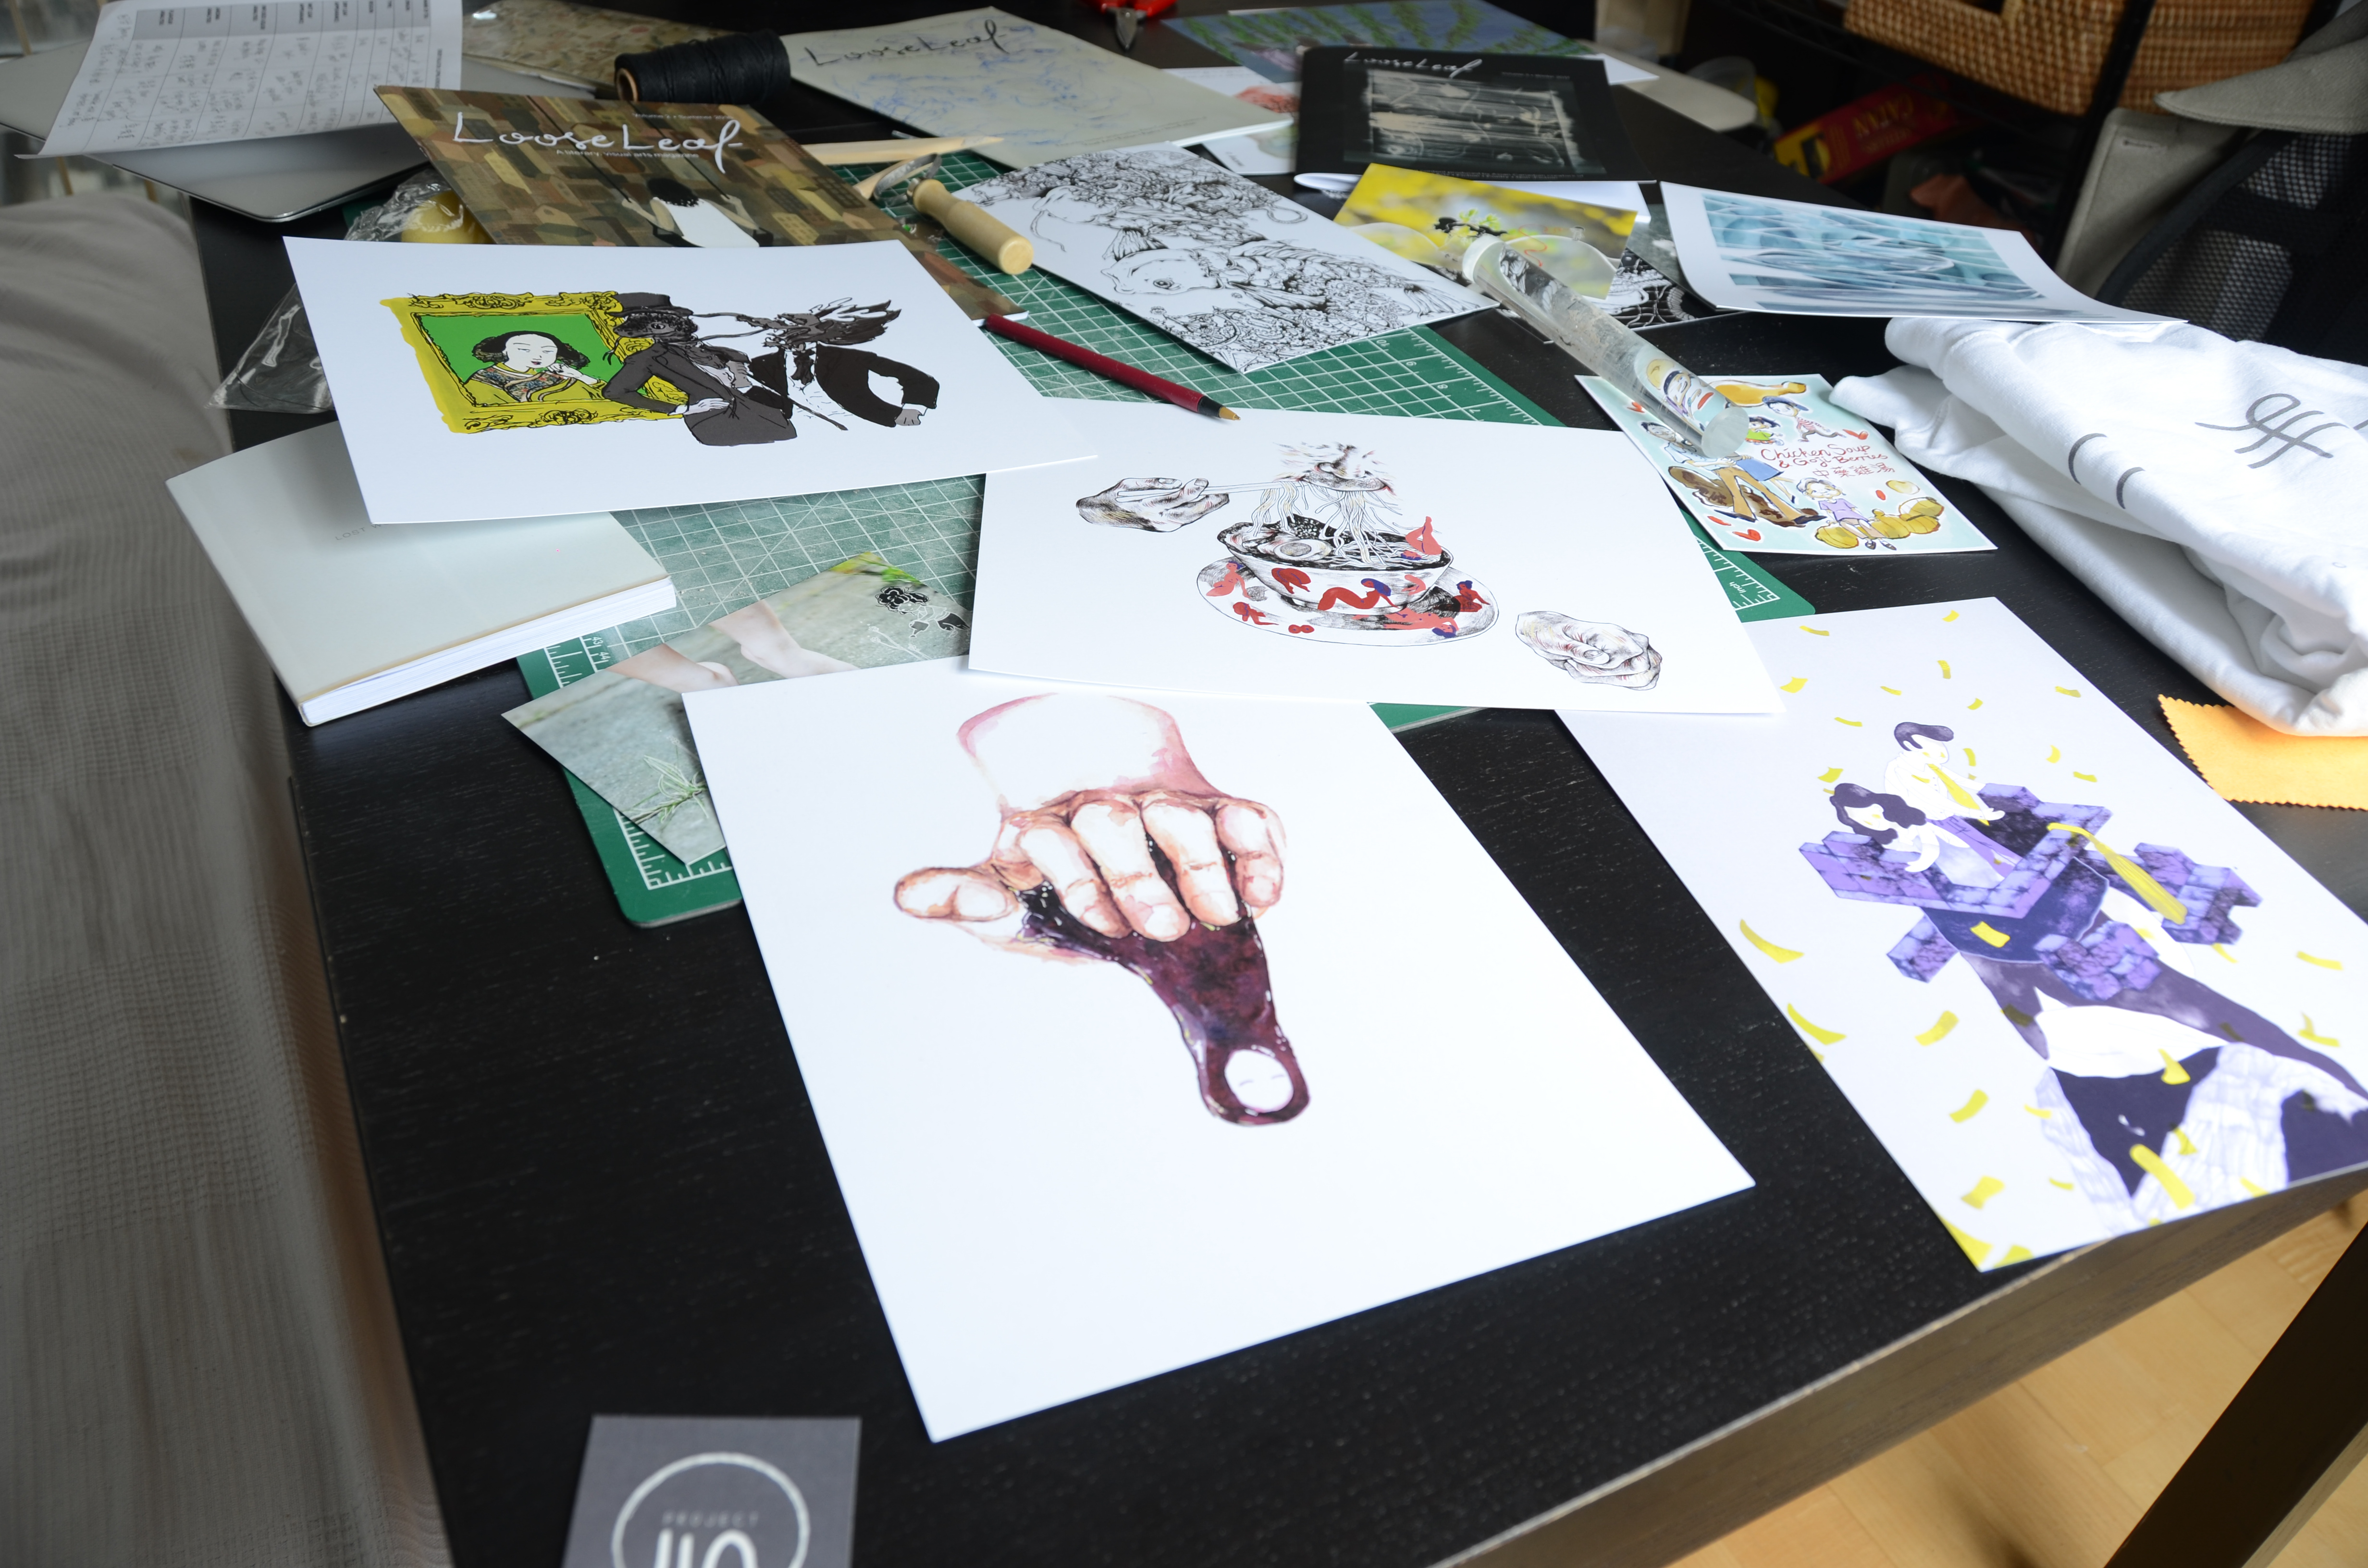 Close up a hand drawn images scattered over a desk.